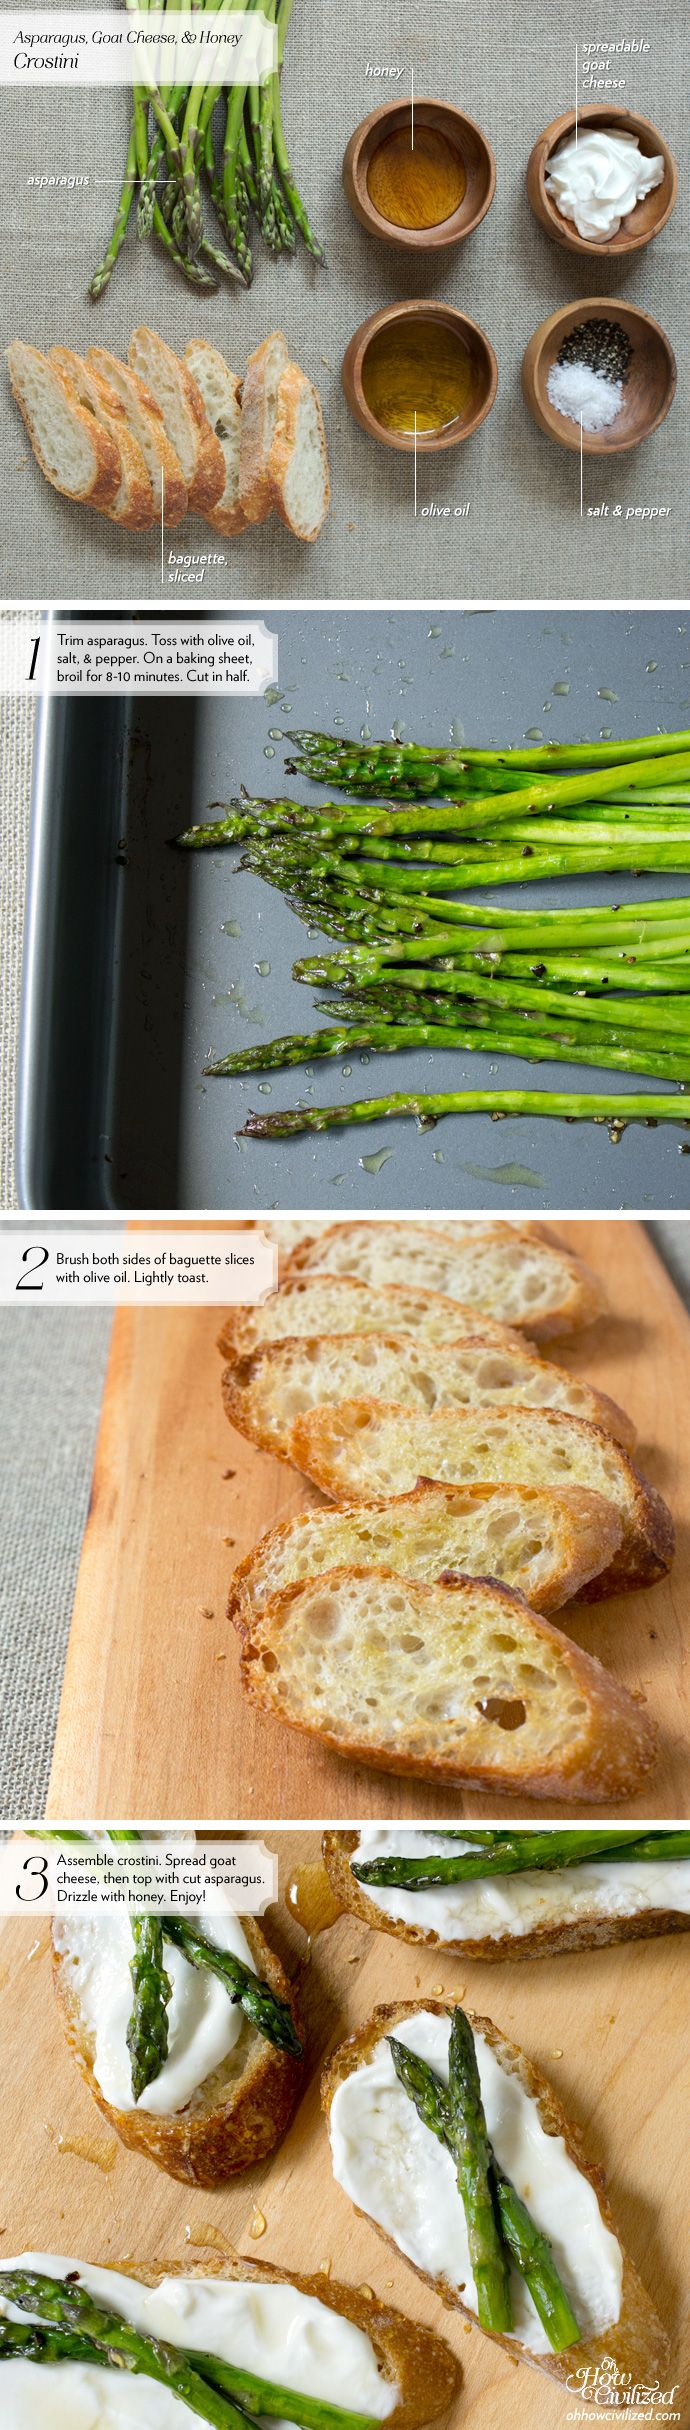 Asparagus, Goat Cheese, & Honey Crostini - Home - Oh, How Civilized